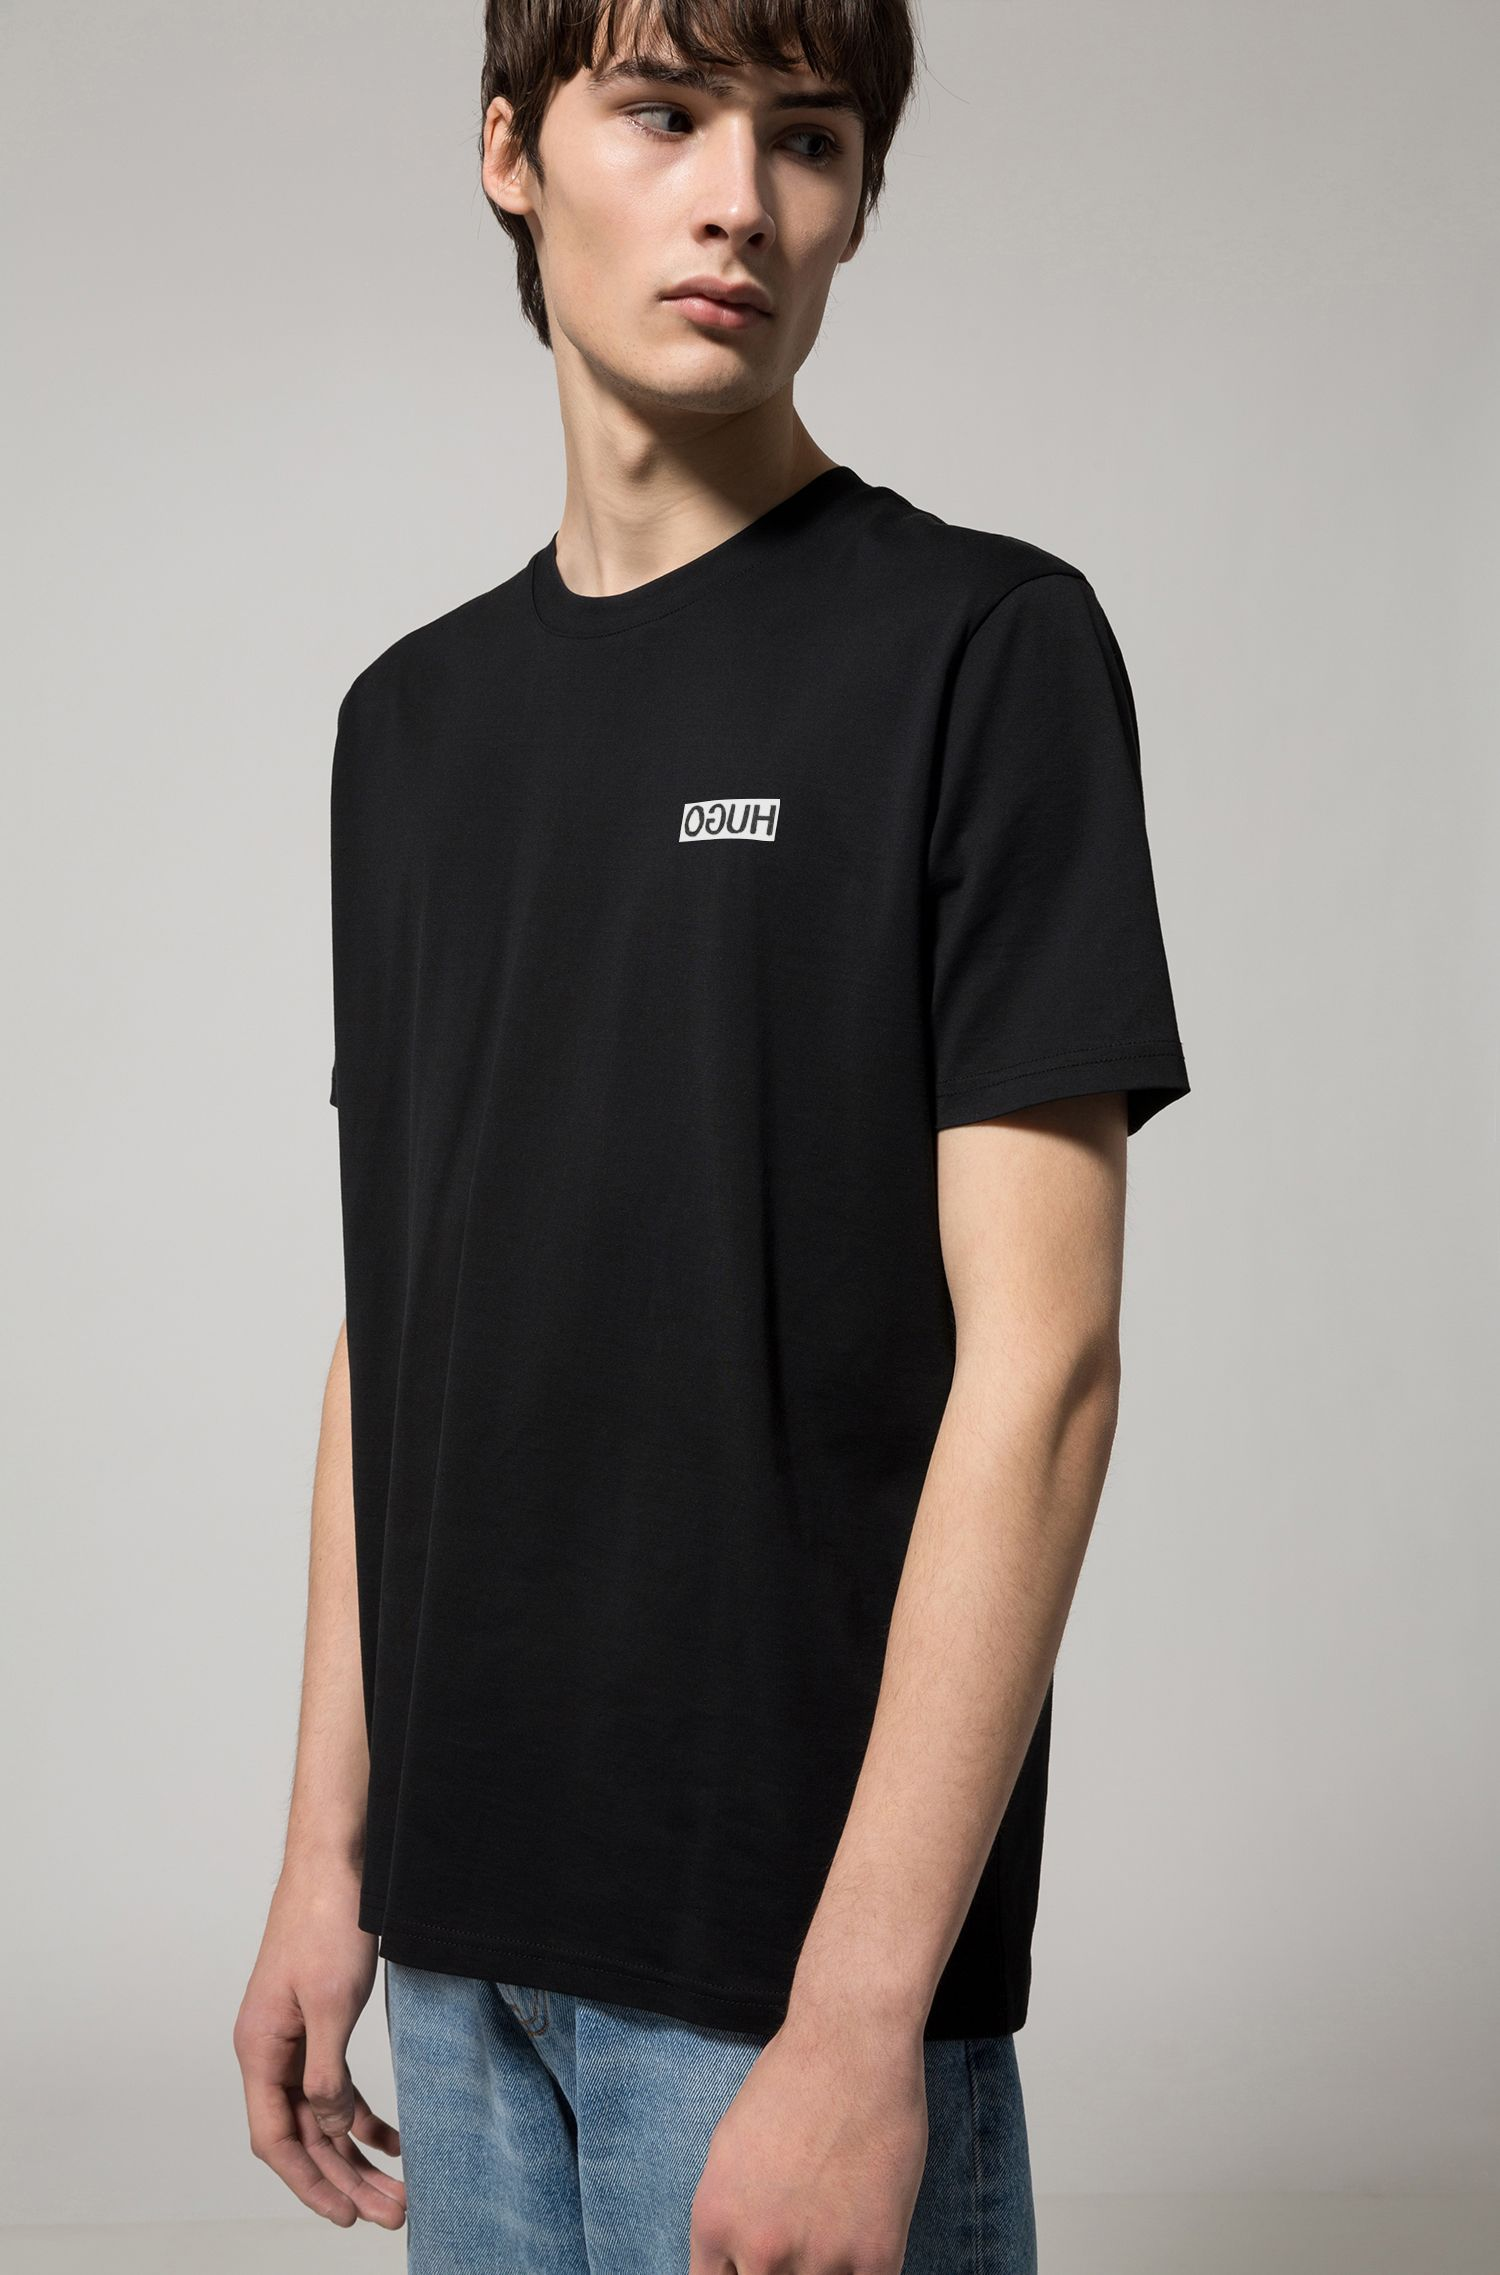 Logo Cotton Graphic T-Shirt | Durned , Black